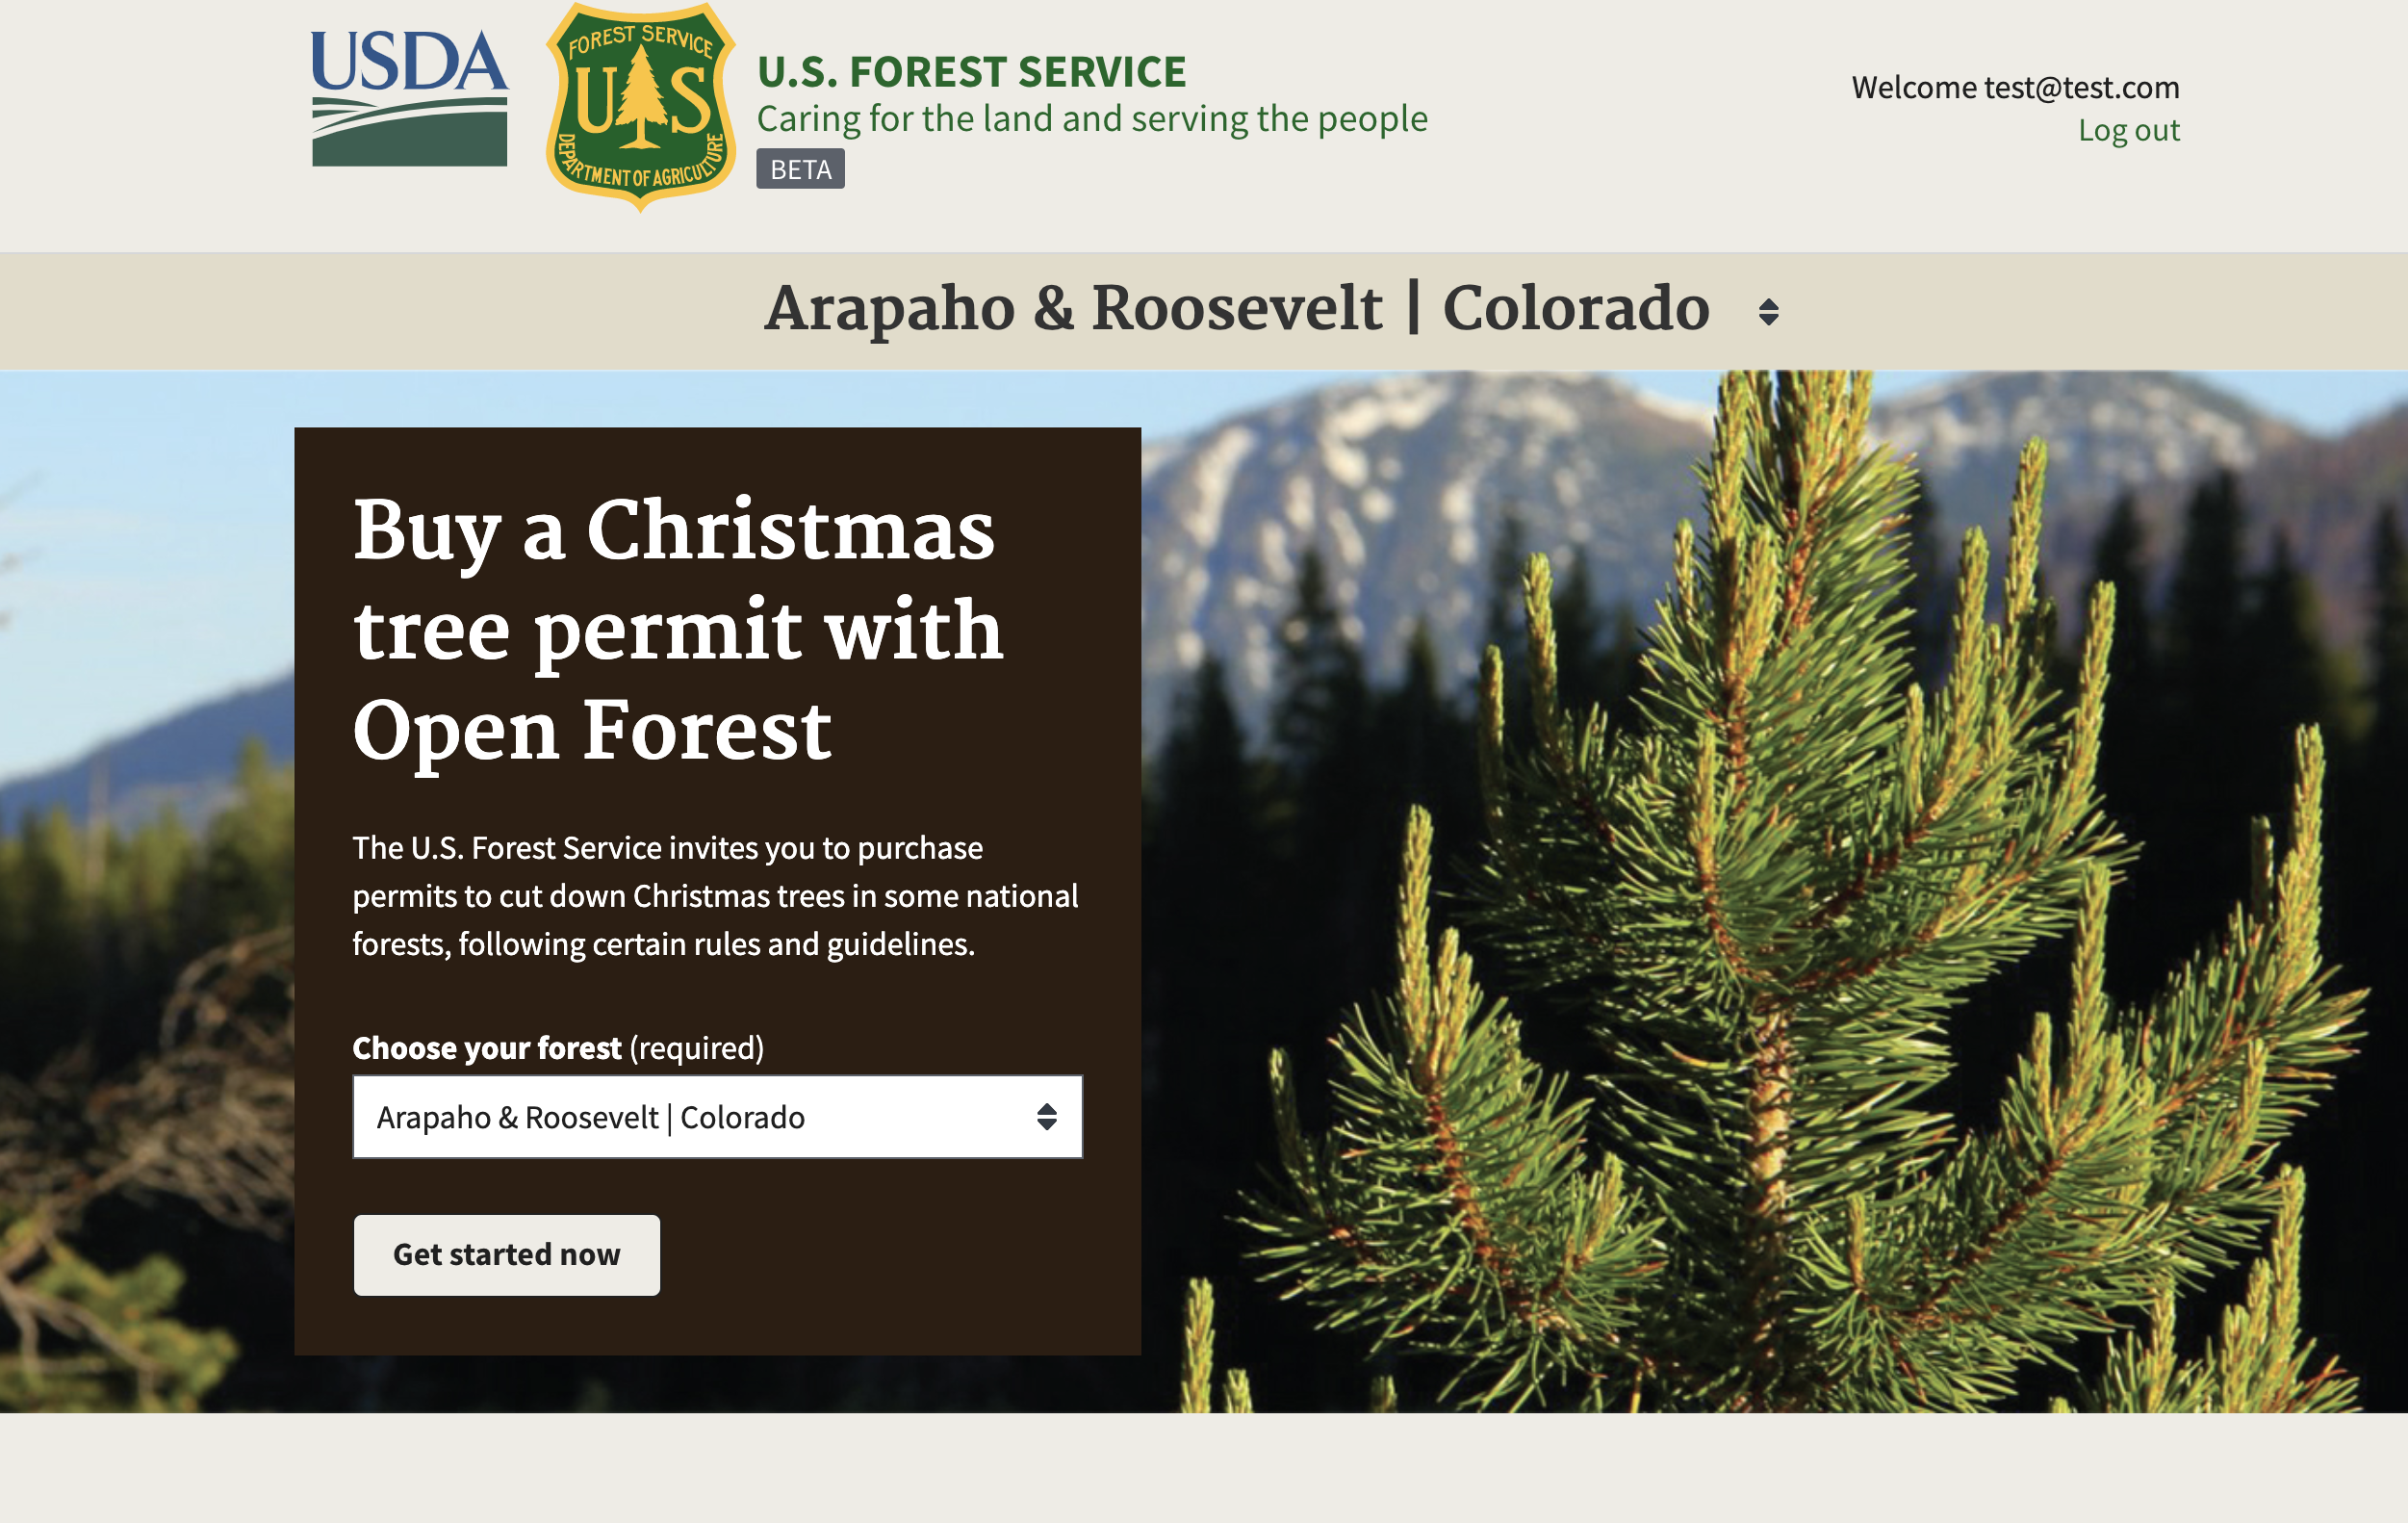 Colorado Christmas Tree Permits 2019 As a user I need to be able to see what the name of the forest is